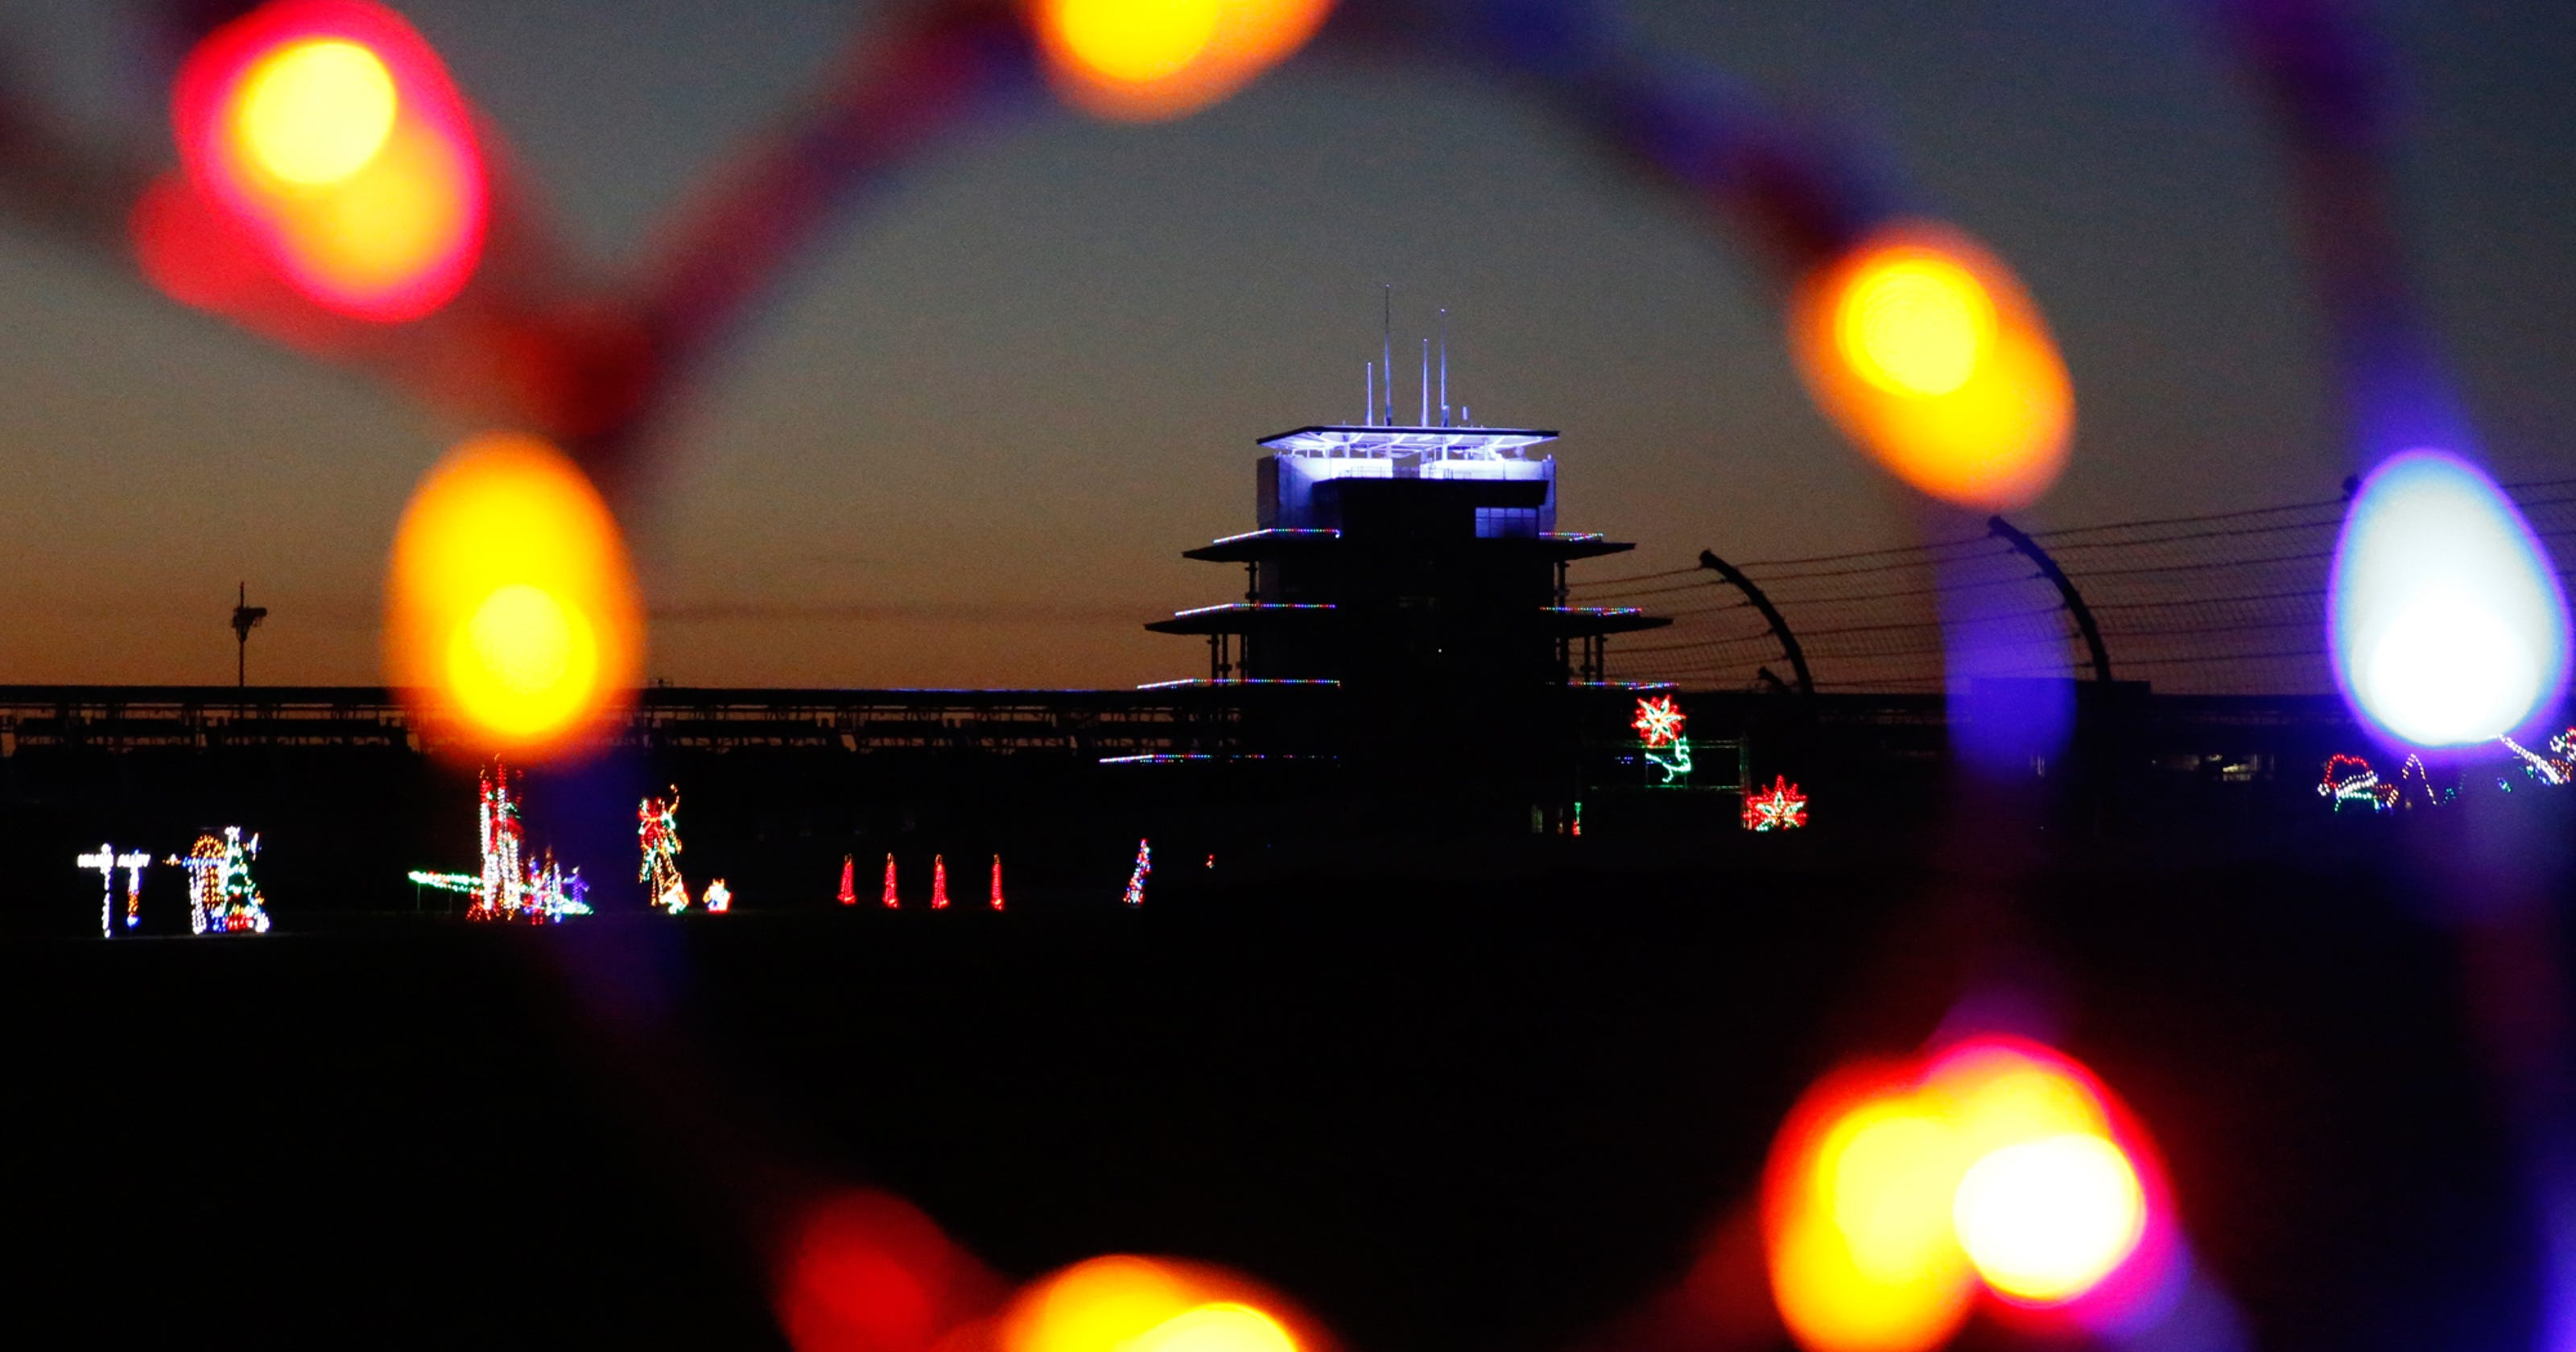 5 cool ways to see Christmas lights in Indy